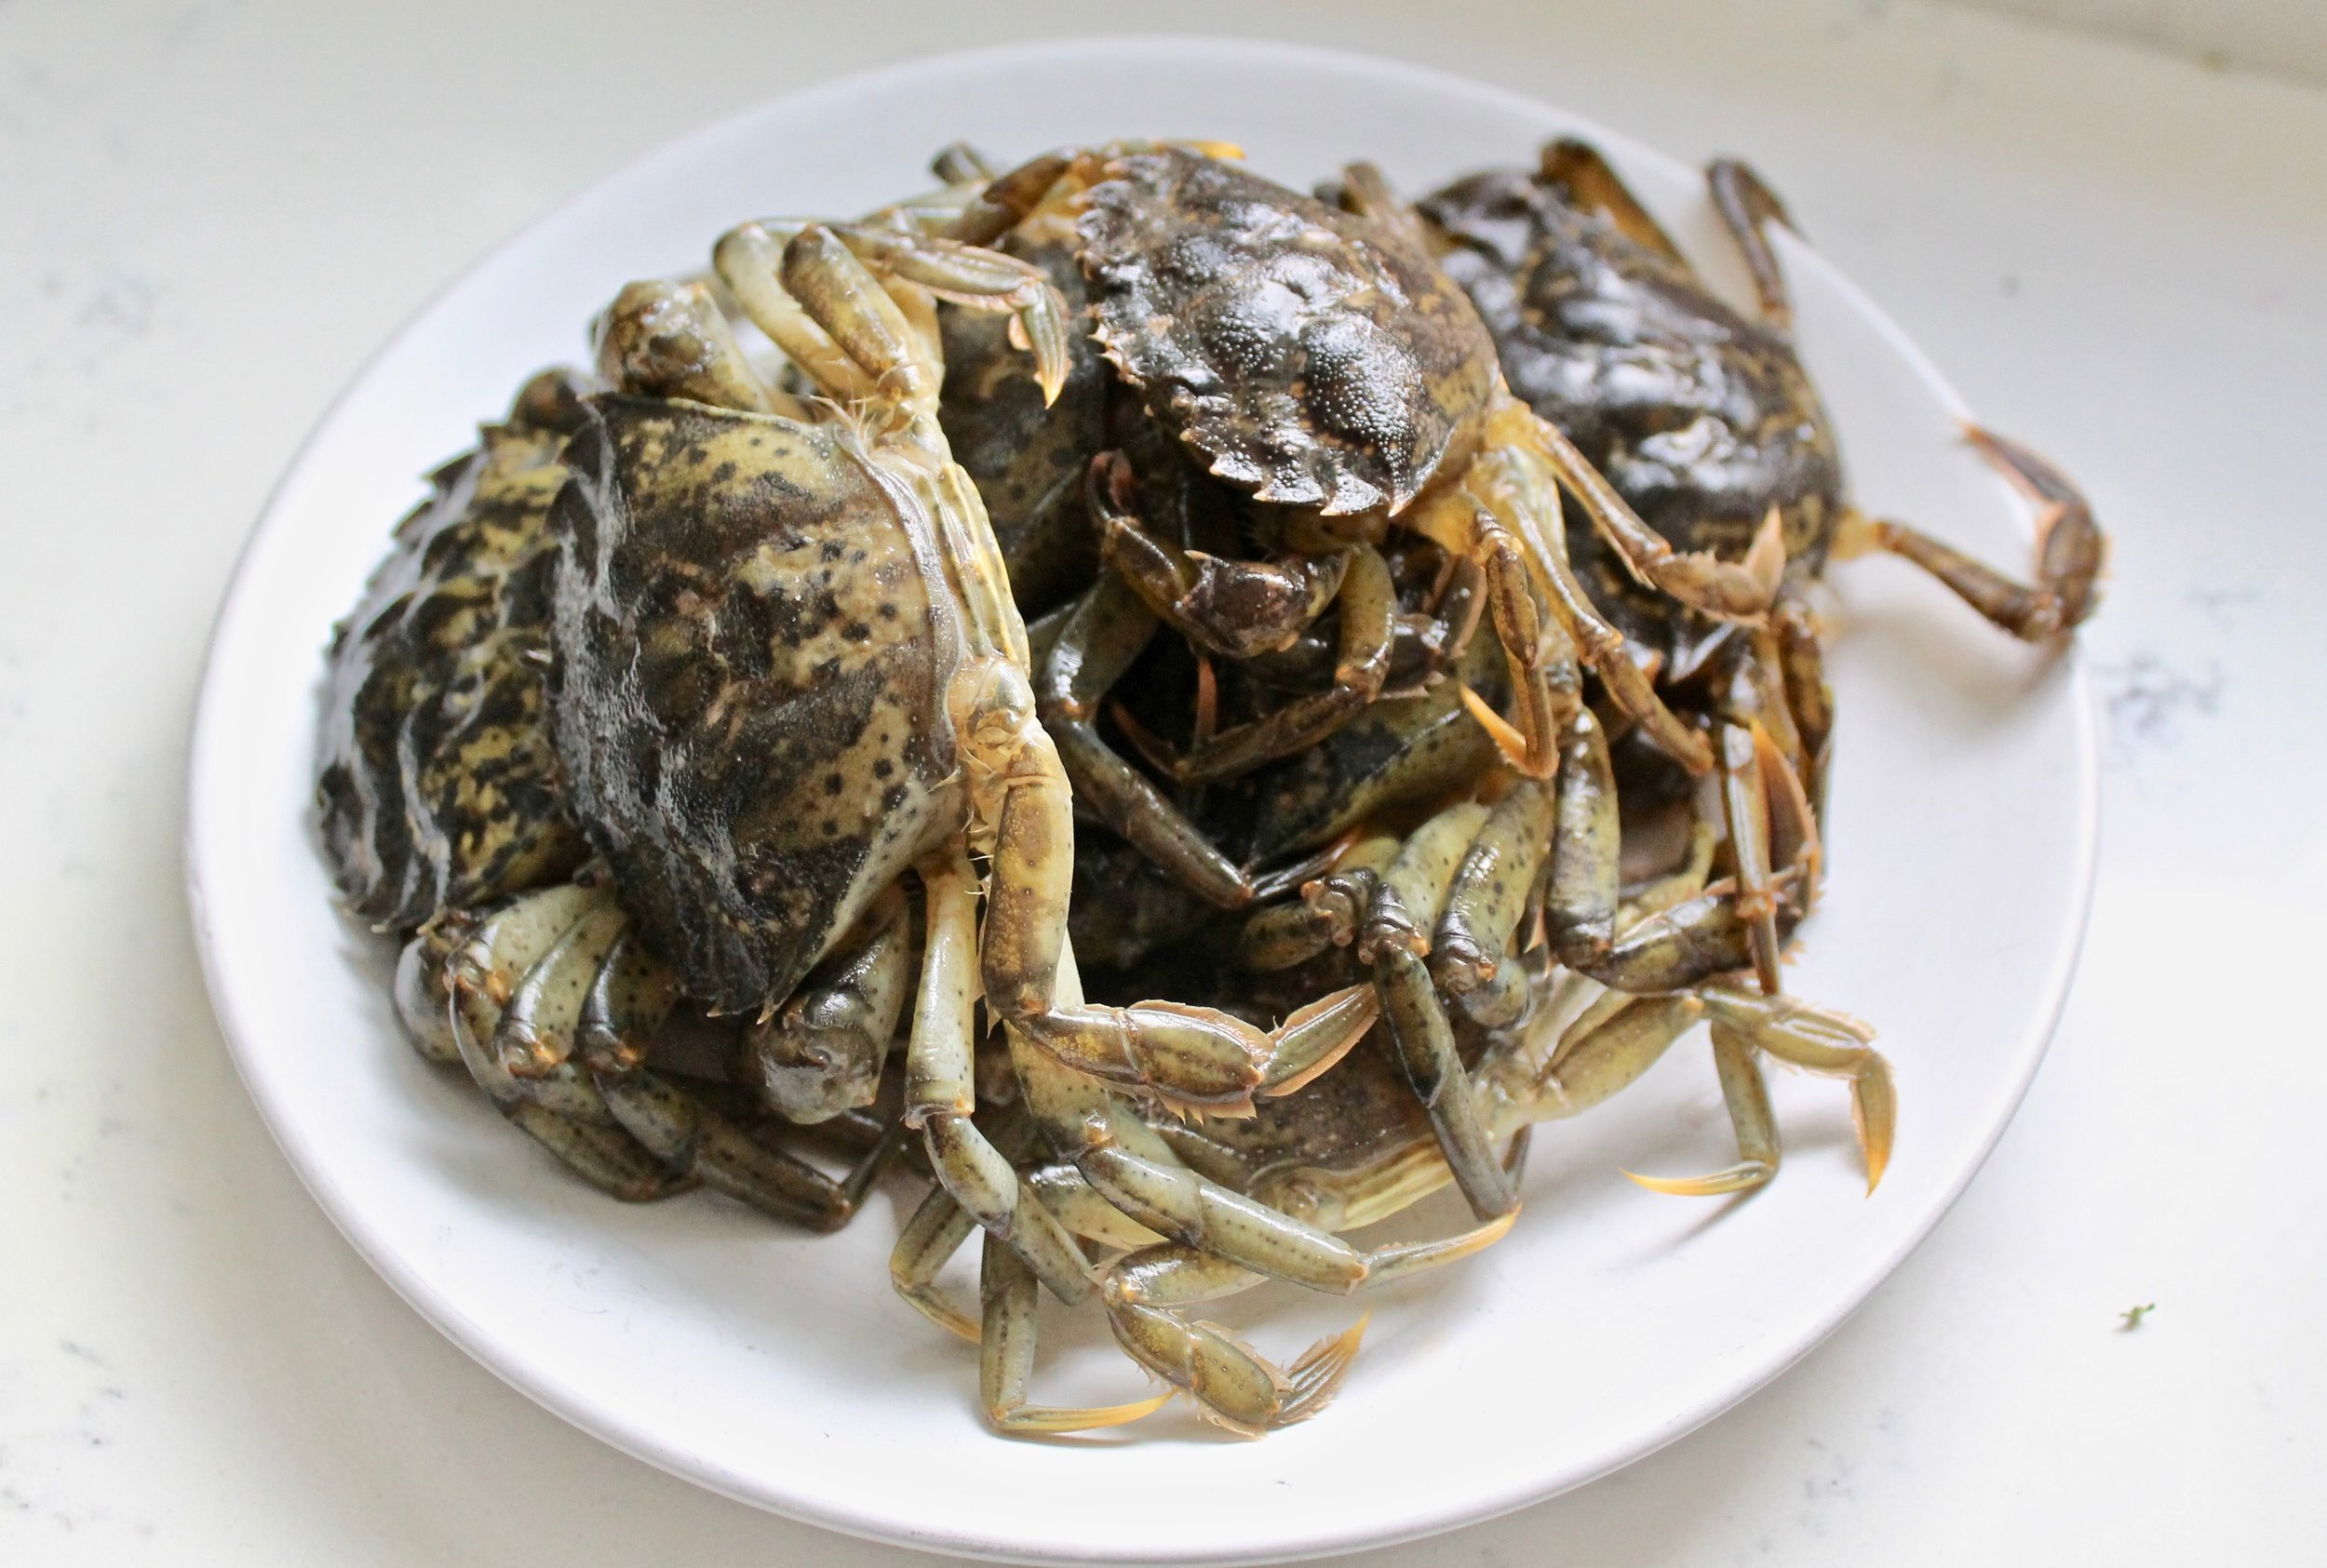 Freezing, Thawing, & Trimming Soft-Shell Green Crab - With Greenpoint Fish & Lobster